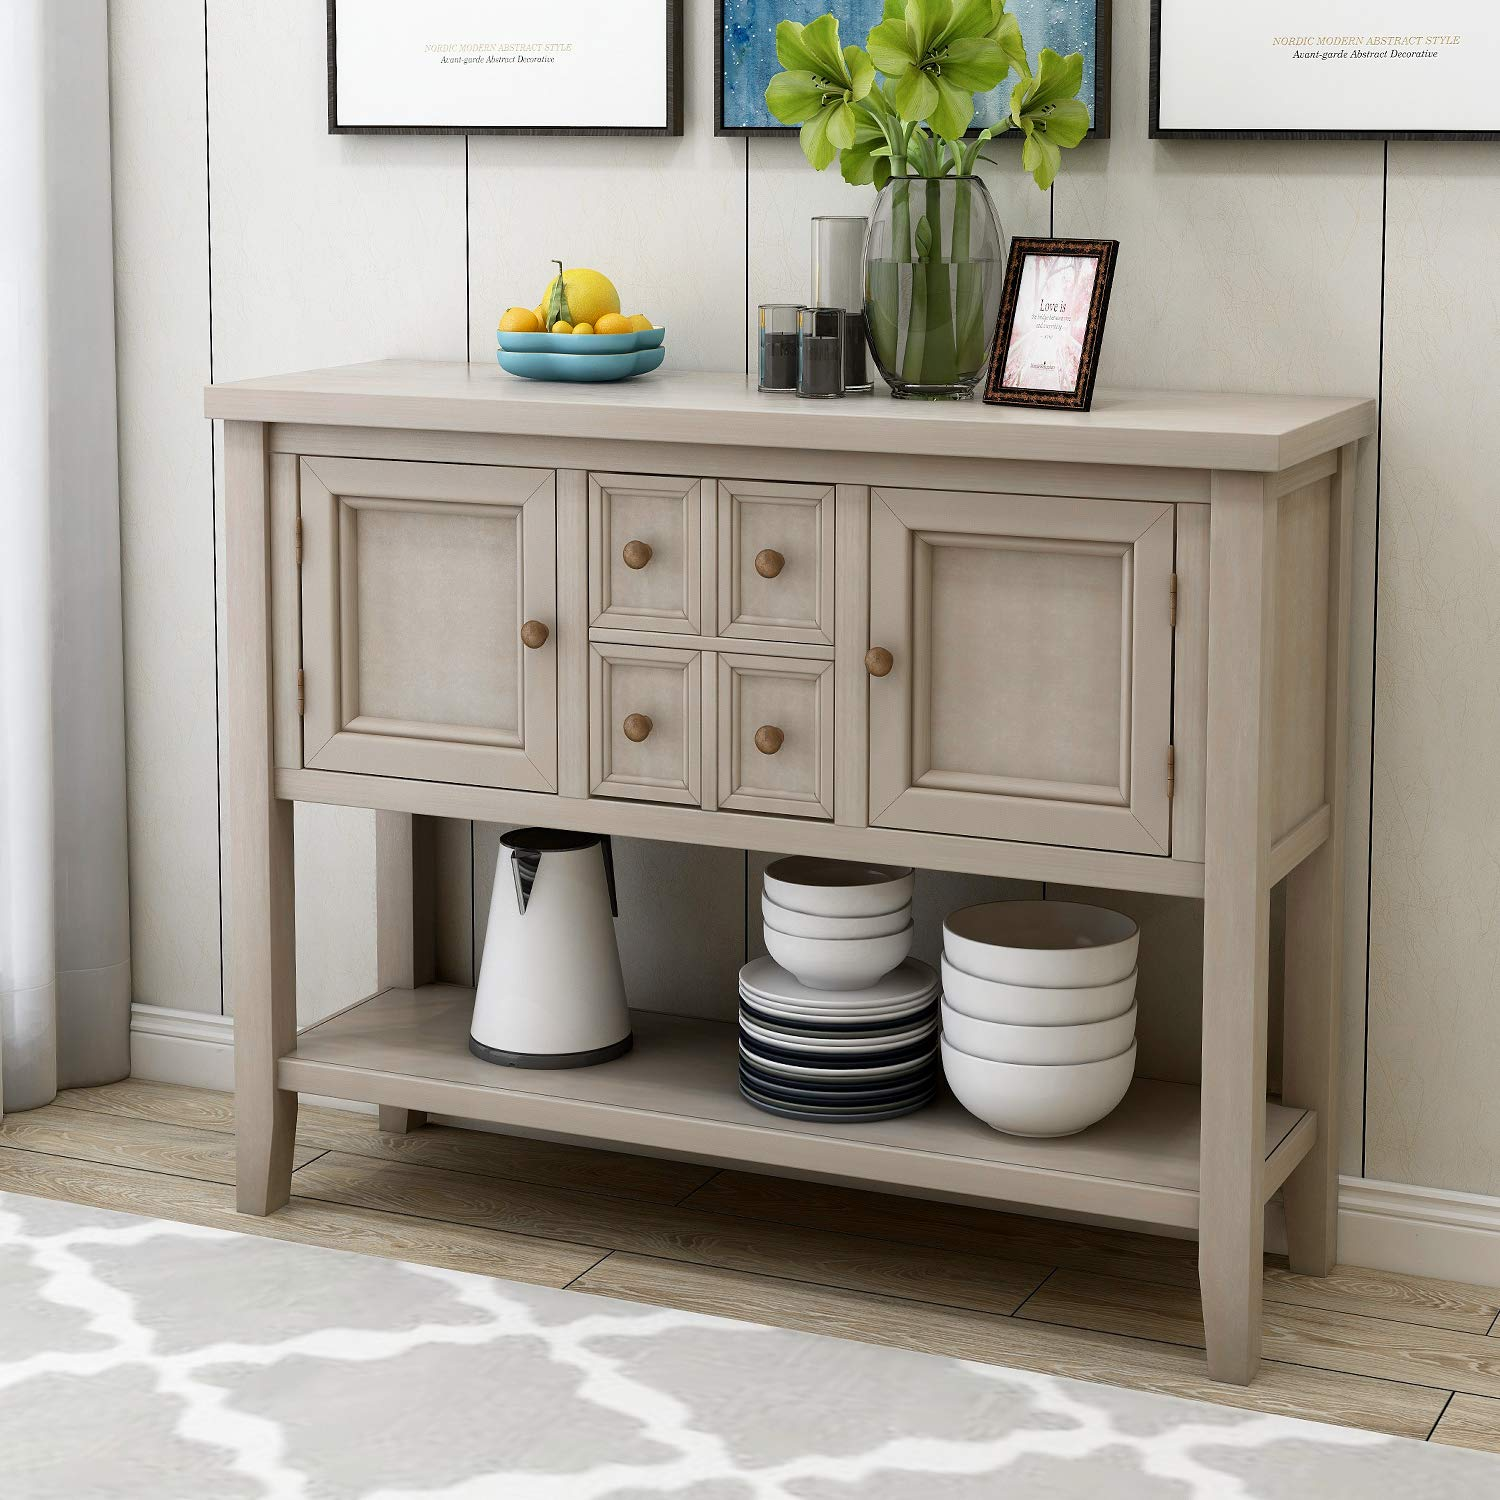 HM HOME Console Table Buffet Table, Sofa Table Sideboard with 4 Storage Drawers 2 Cabinets and Bottom Shelf for Entryway, Hallway and Living Room (Antique Gray) by HM HOME